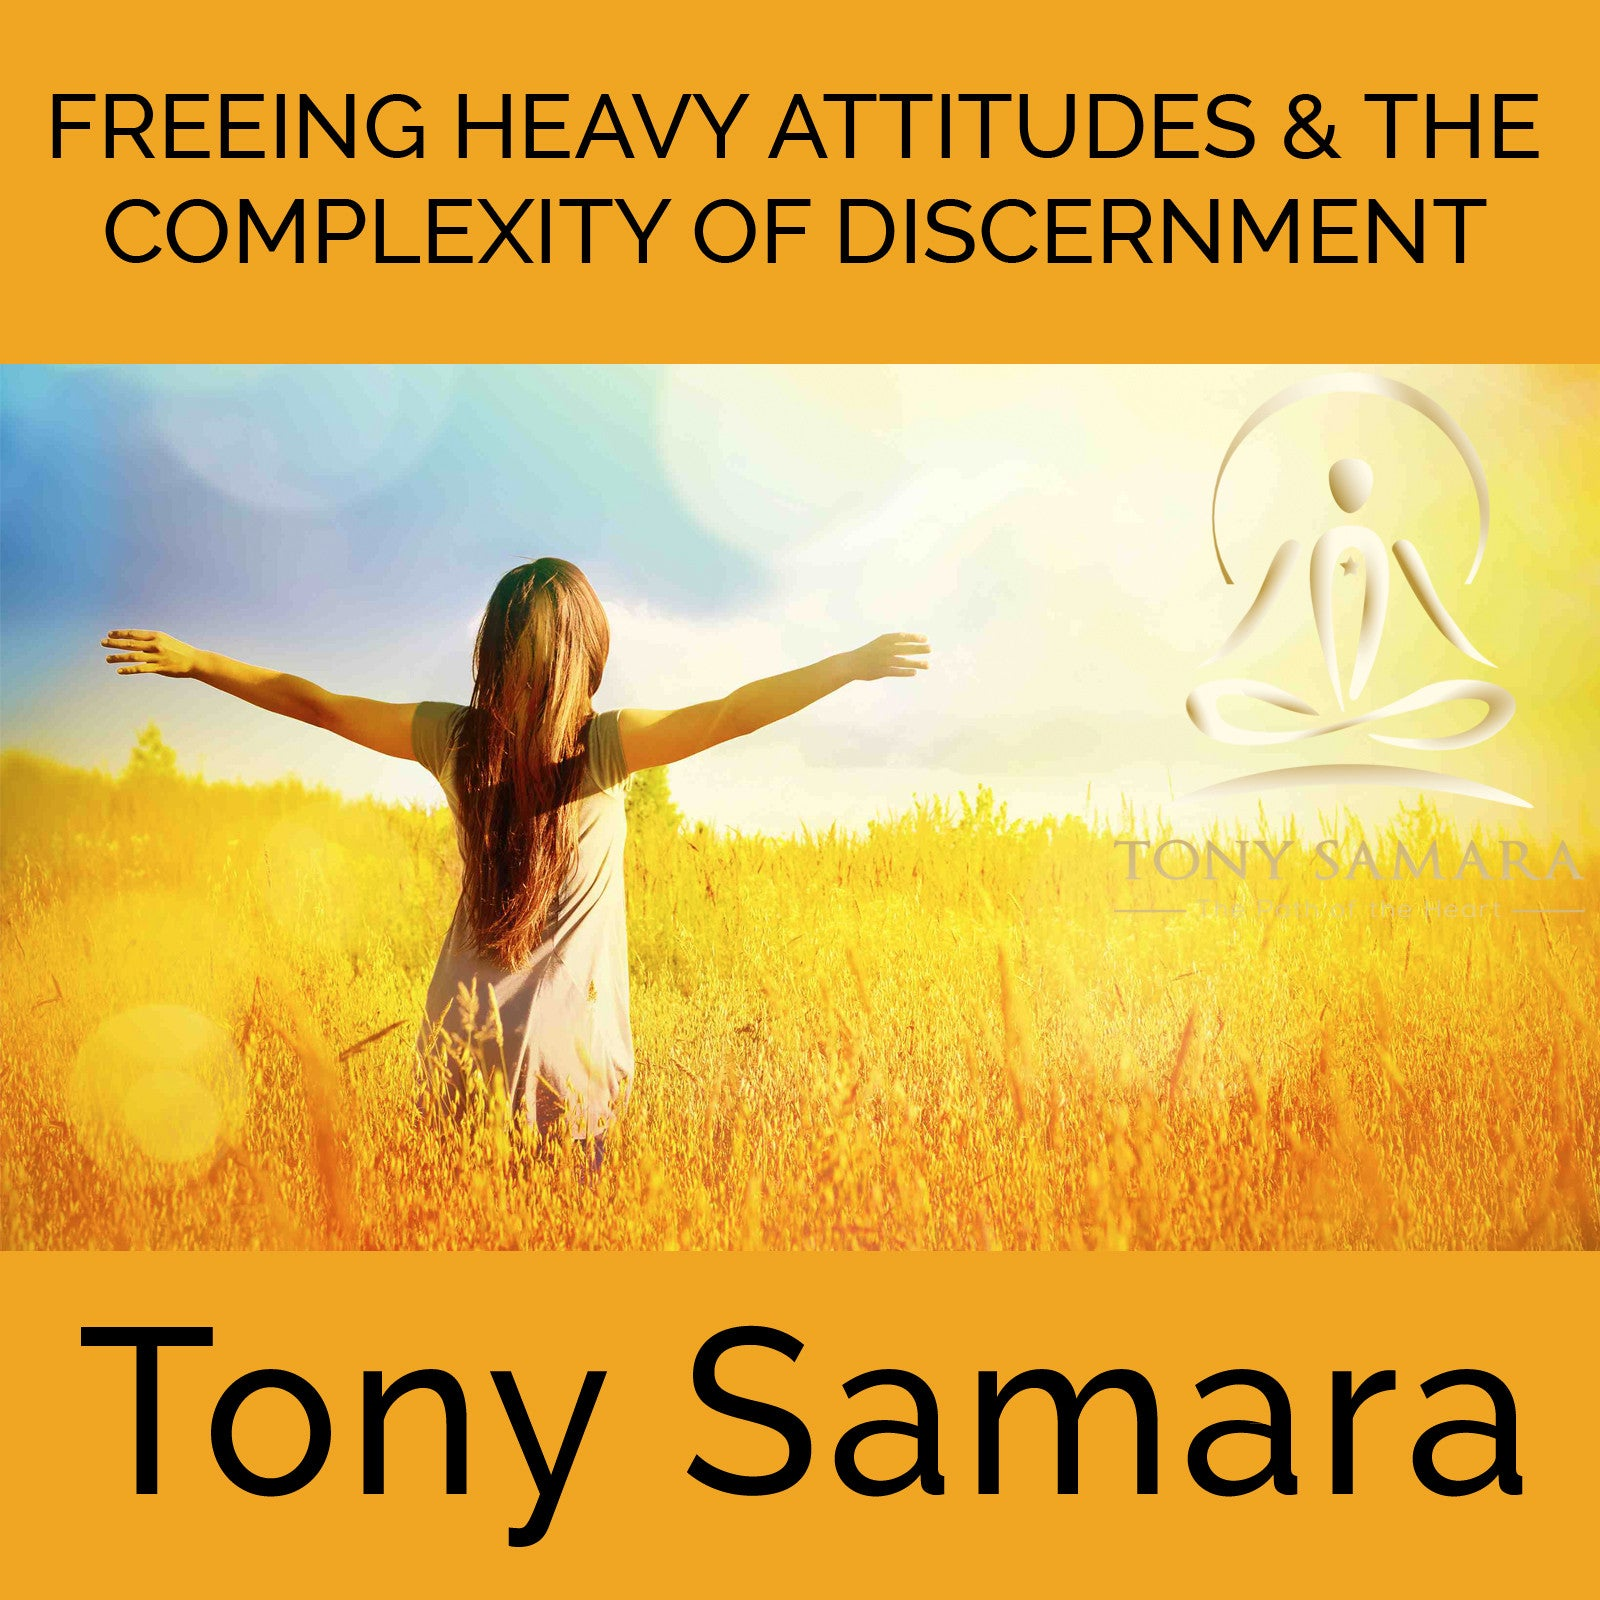 Freeing Heavy Attitudes & the Complexity of Discernment (MP3 Audio Download) - Tony Samara Meditation